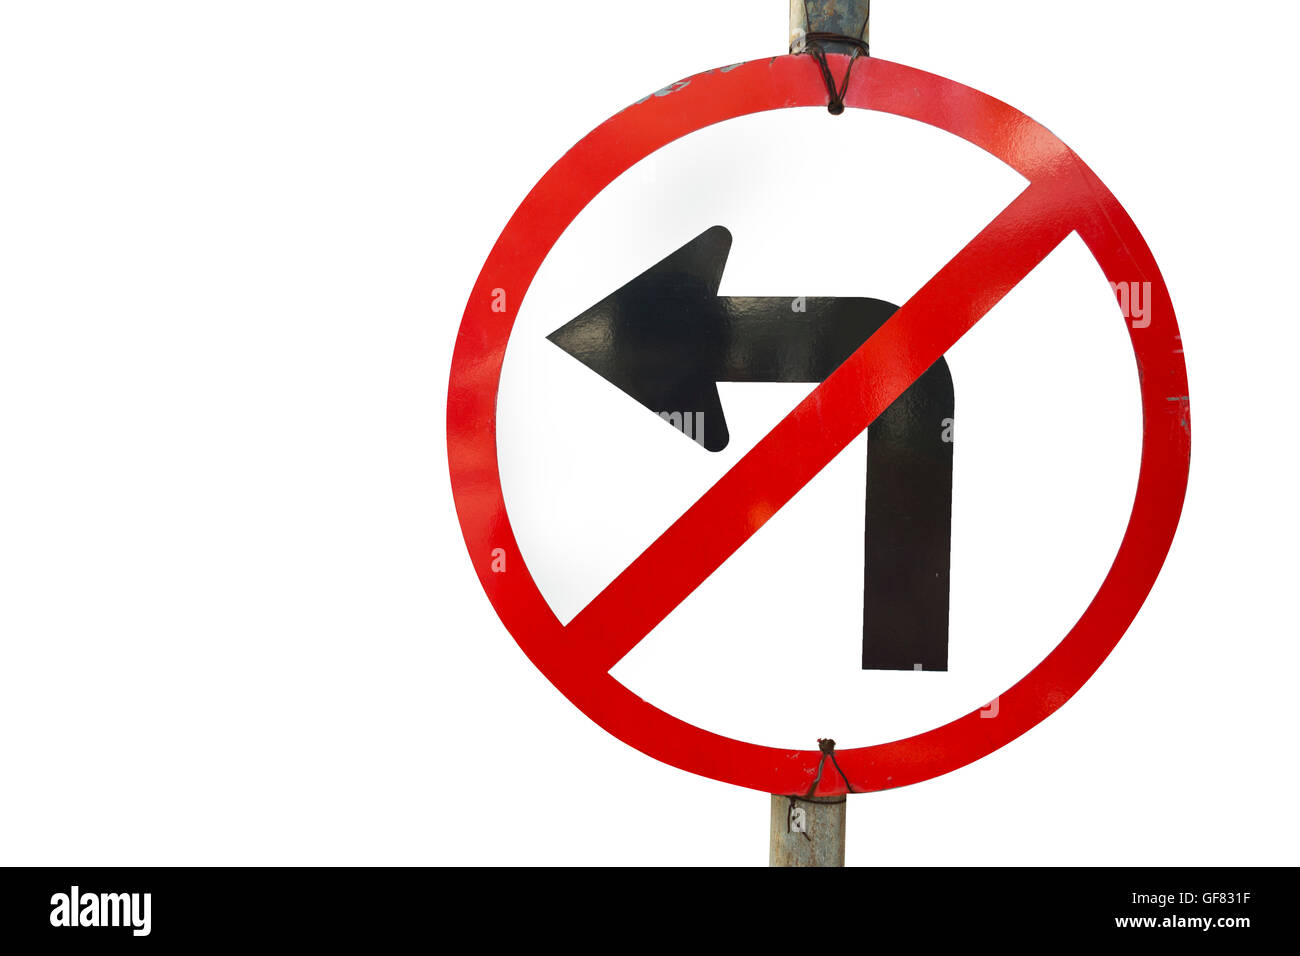 Traffic signs symbols on the road stock photo 112660059 alamy traffic signs symbols on the road buycottarizona Choice Image